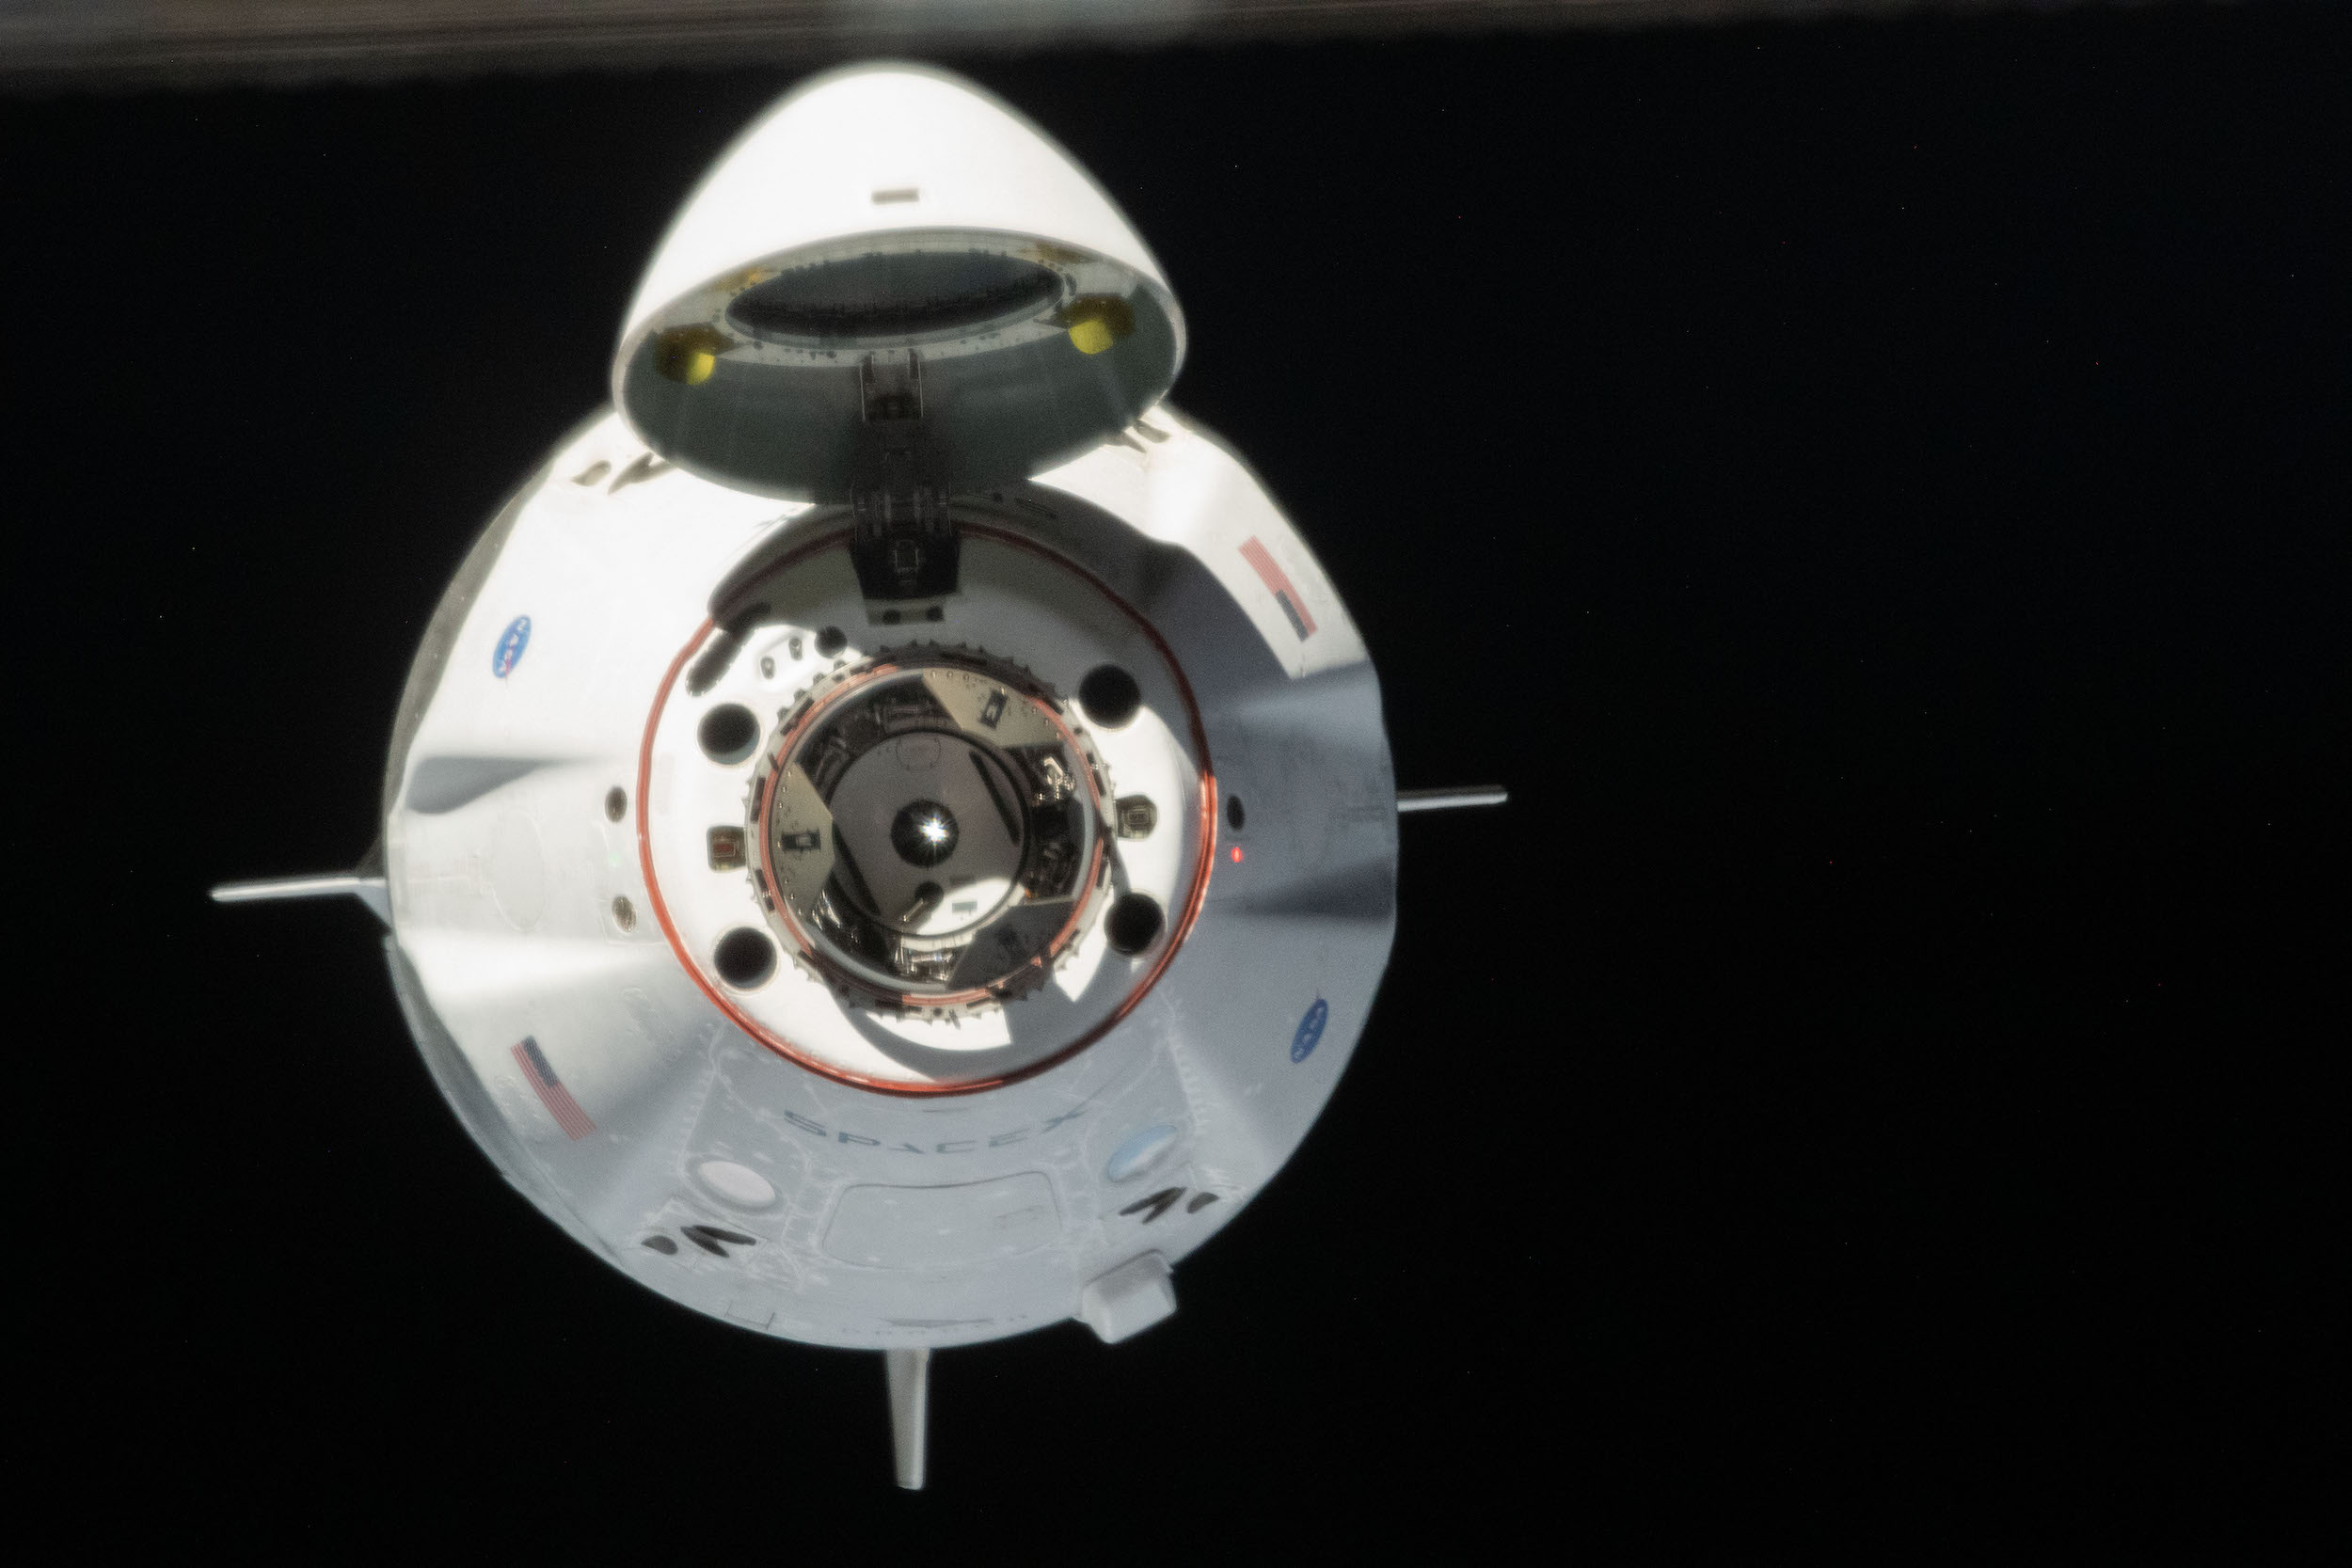 NASA SpaceX ISS Dragon 2 DM-2